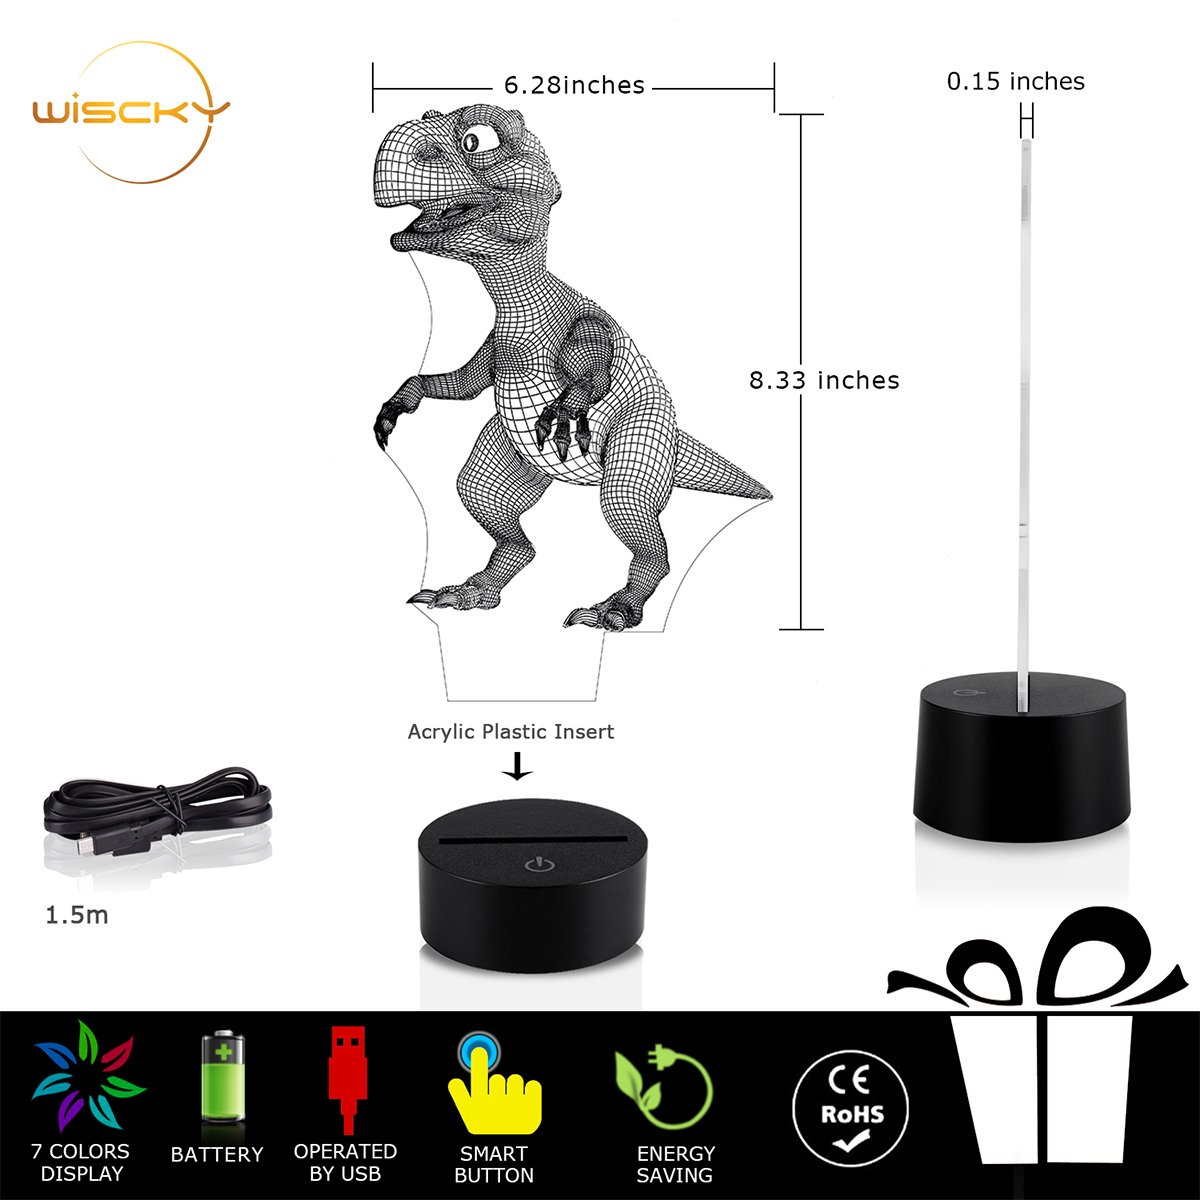 3D Night Lights for Children, Kids Night Lamp, Dinosaur Toys for Boys, 7 LED Colors Changing Lighting, Touch USB Charge Table Desk Bedroom Decoration, Cool Gifts Ideas Birthday Xmas for Baby Friends